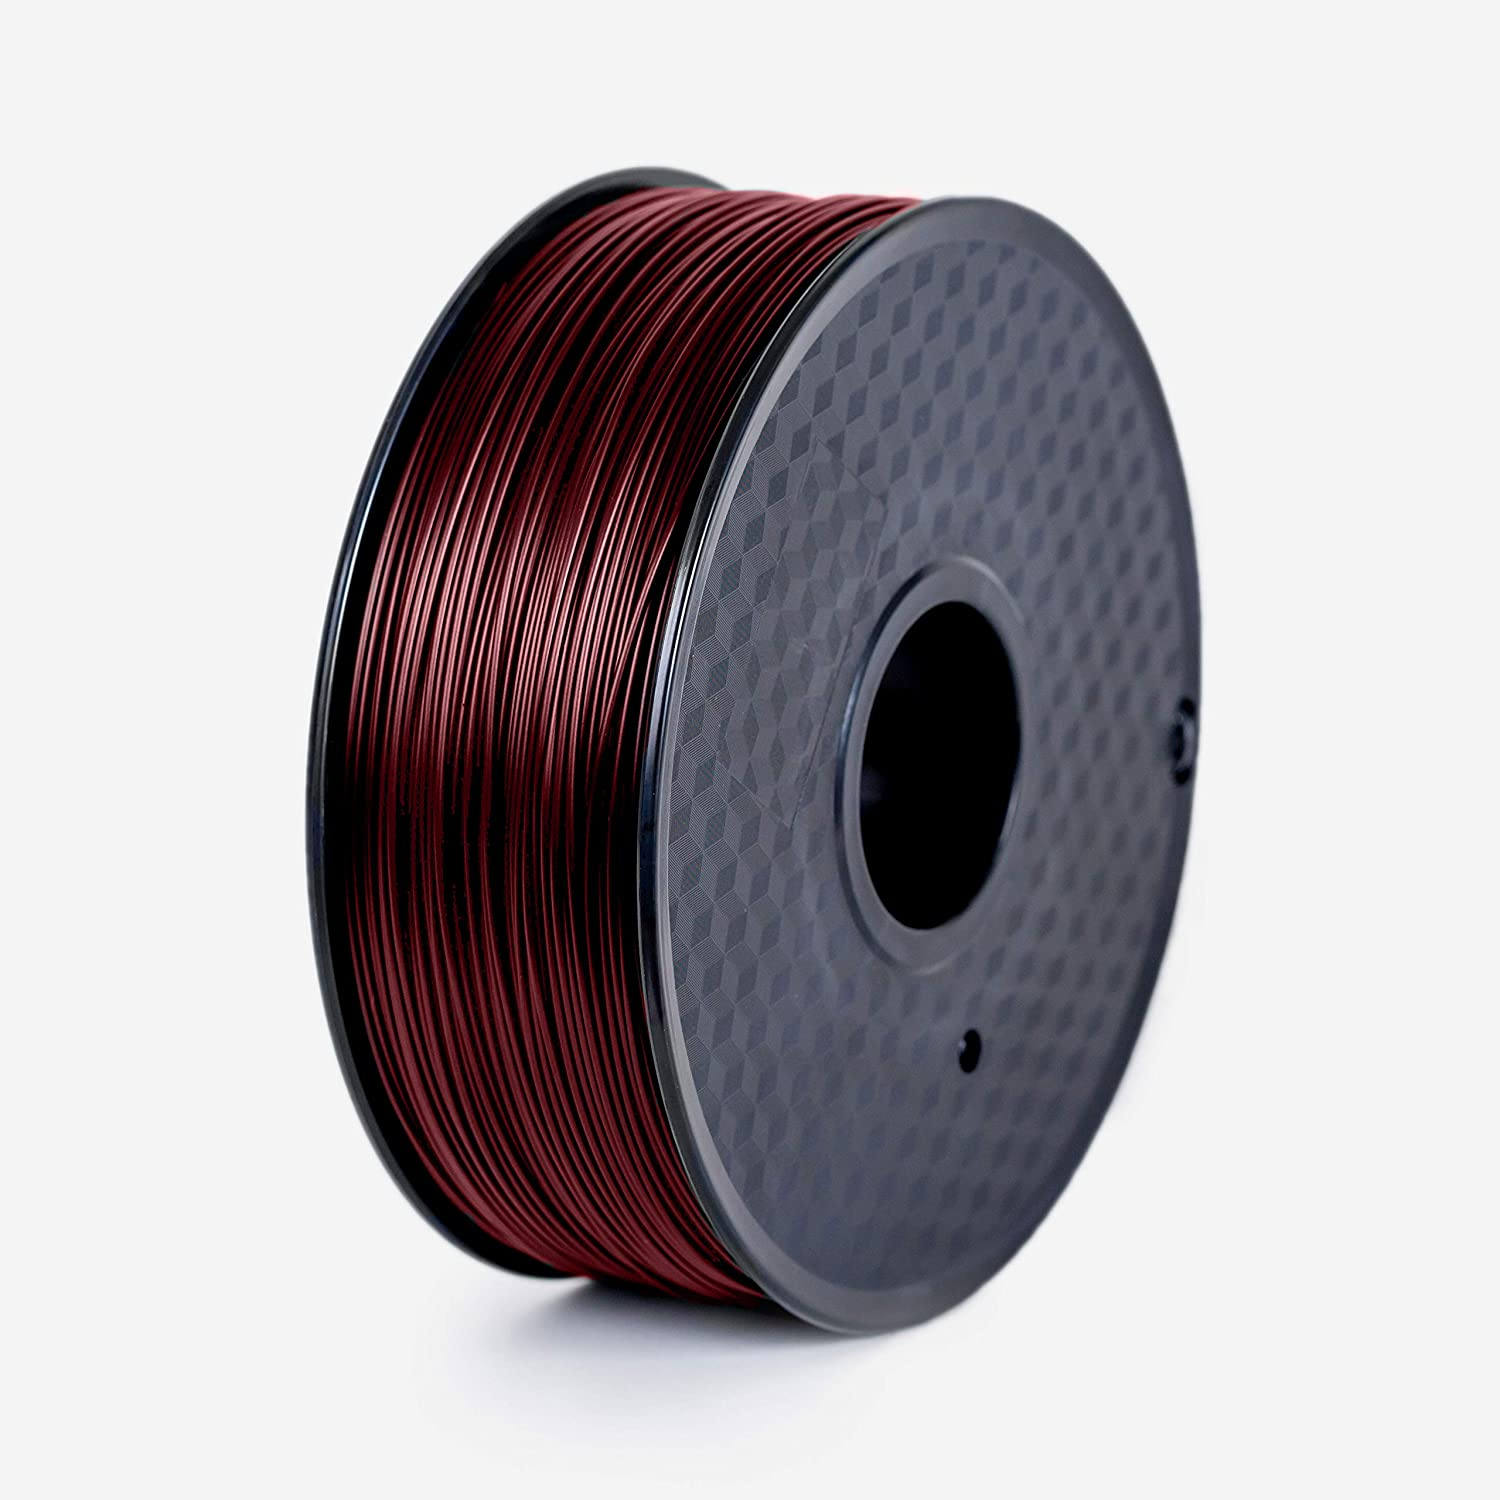 Paramount 3D Indianapolis Mall PLA Black Cherry New Orleans Mall 1.75mm Filament WMRL3005490 1kg